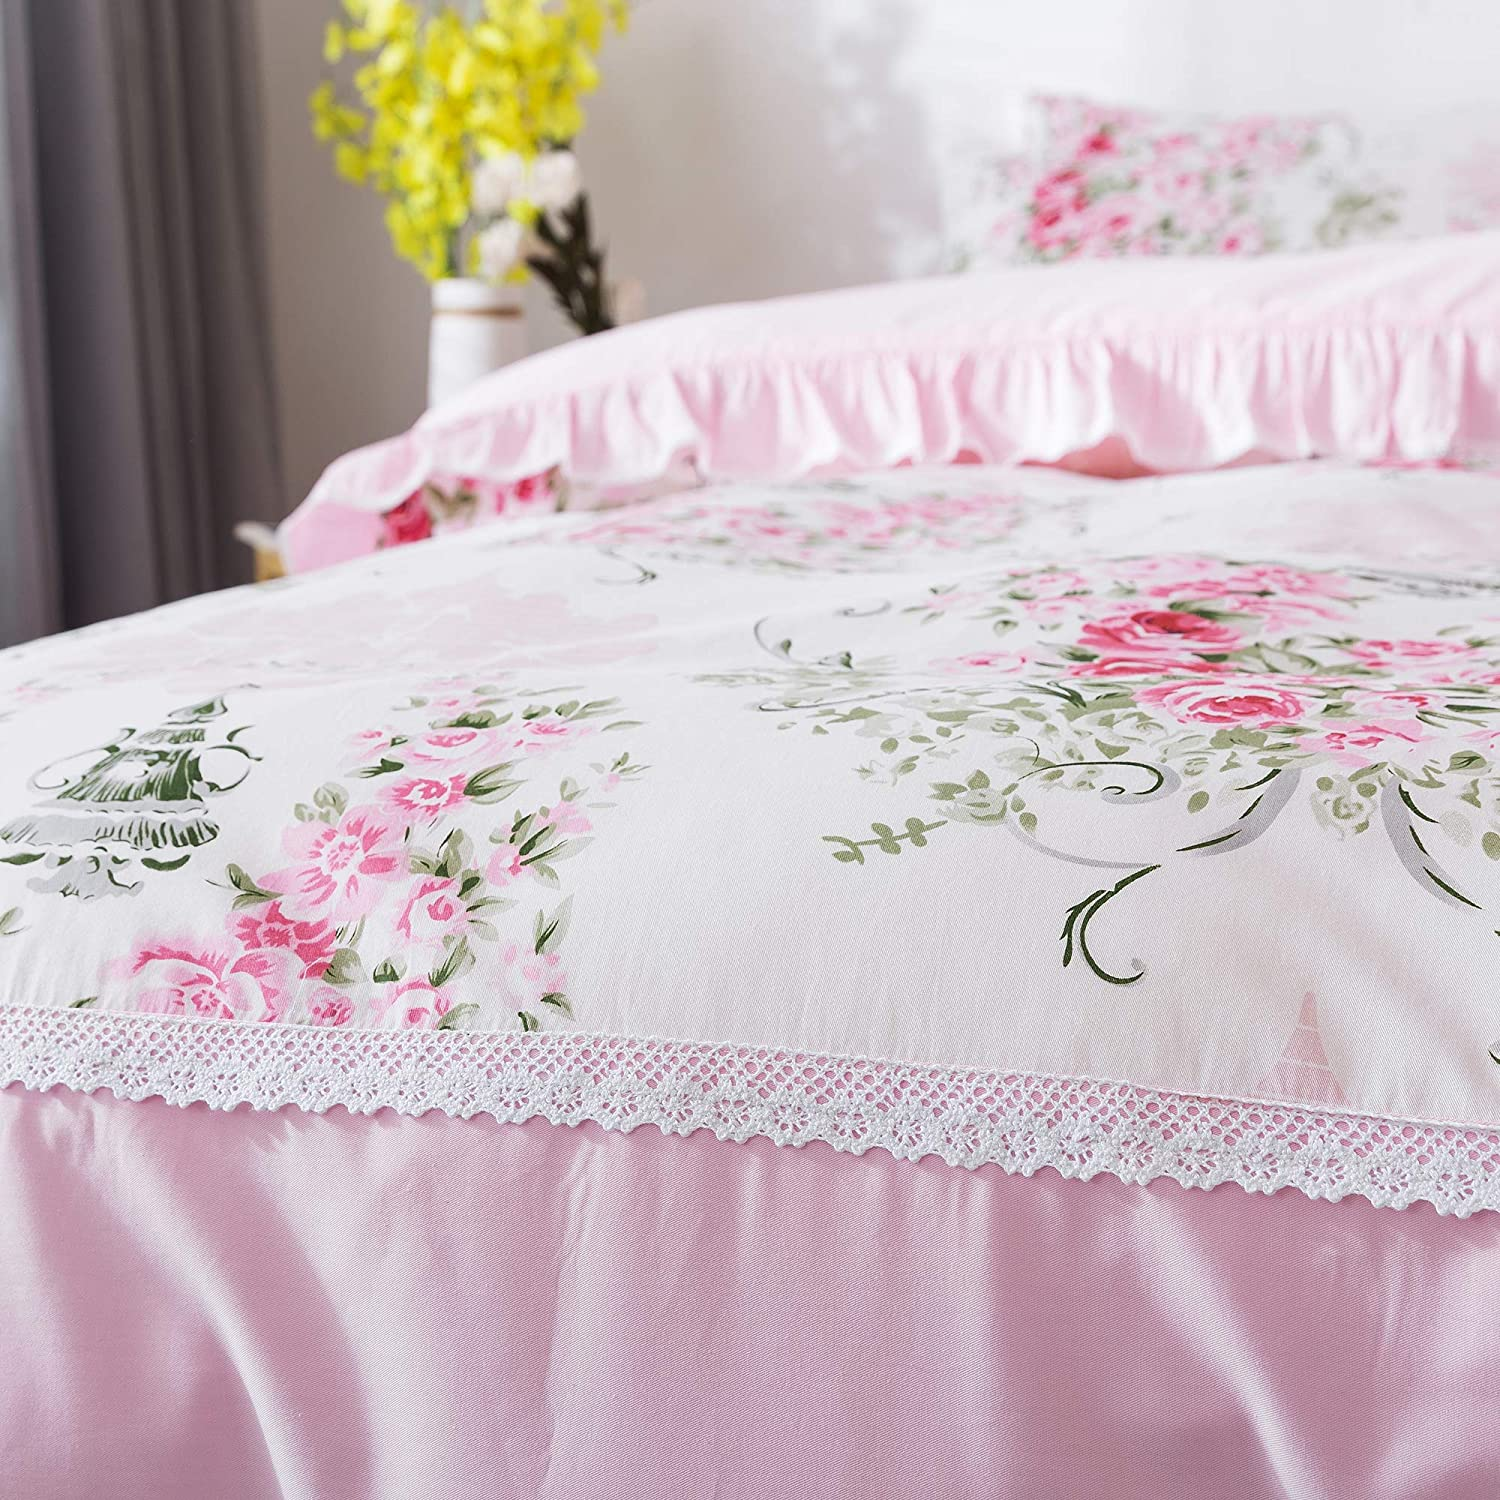 FADFAY Shabby Rose Floral Duvet Cover Pink Plaid Girls Bedding Set100/% Cotton Hypoallergenic Bed Sheet Set,5Pcs Twin XL Size 1 Duvet Cover +1 Fitted Sheet+ 1 Flat Sheet +2 Standard Pillowcases